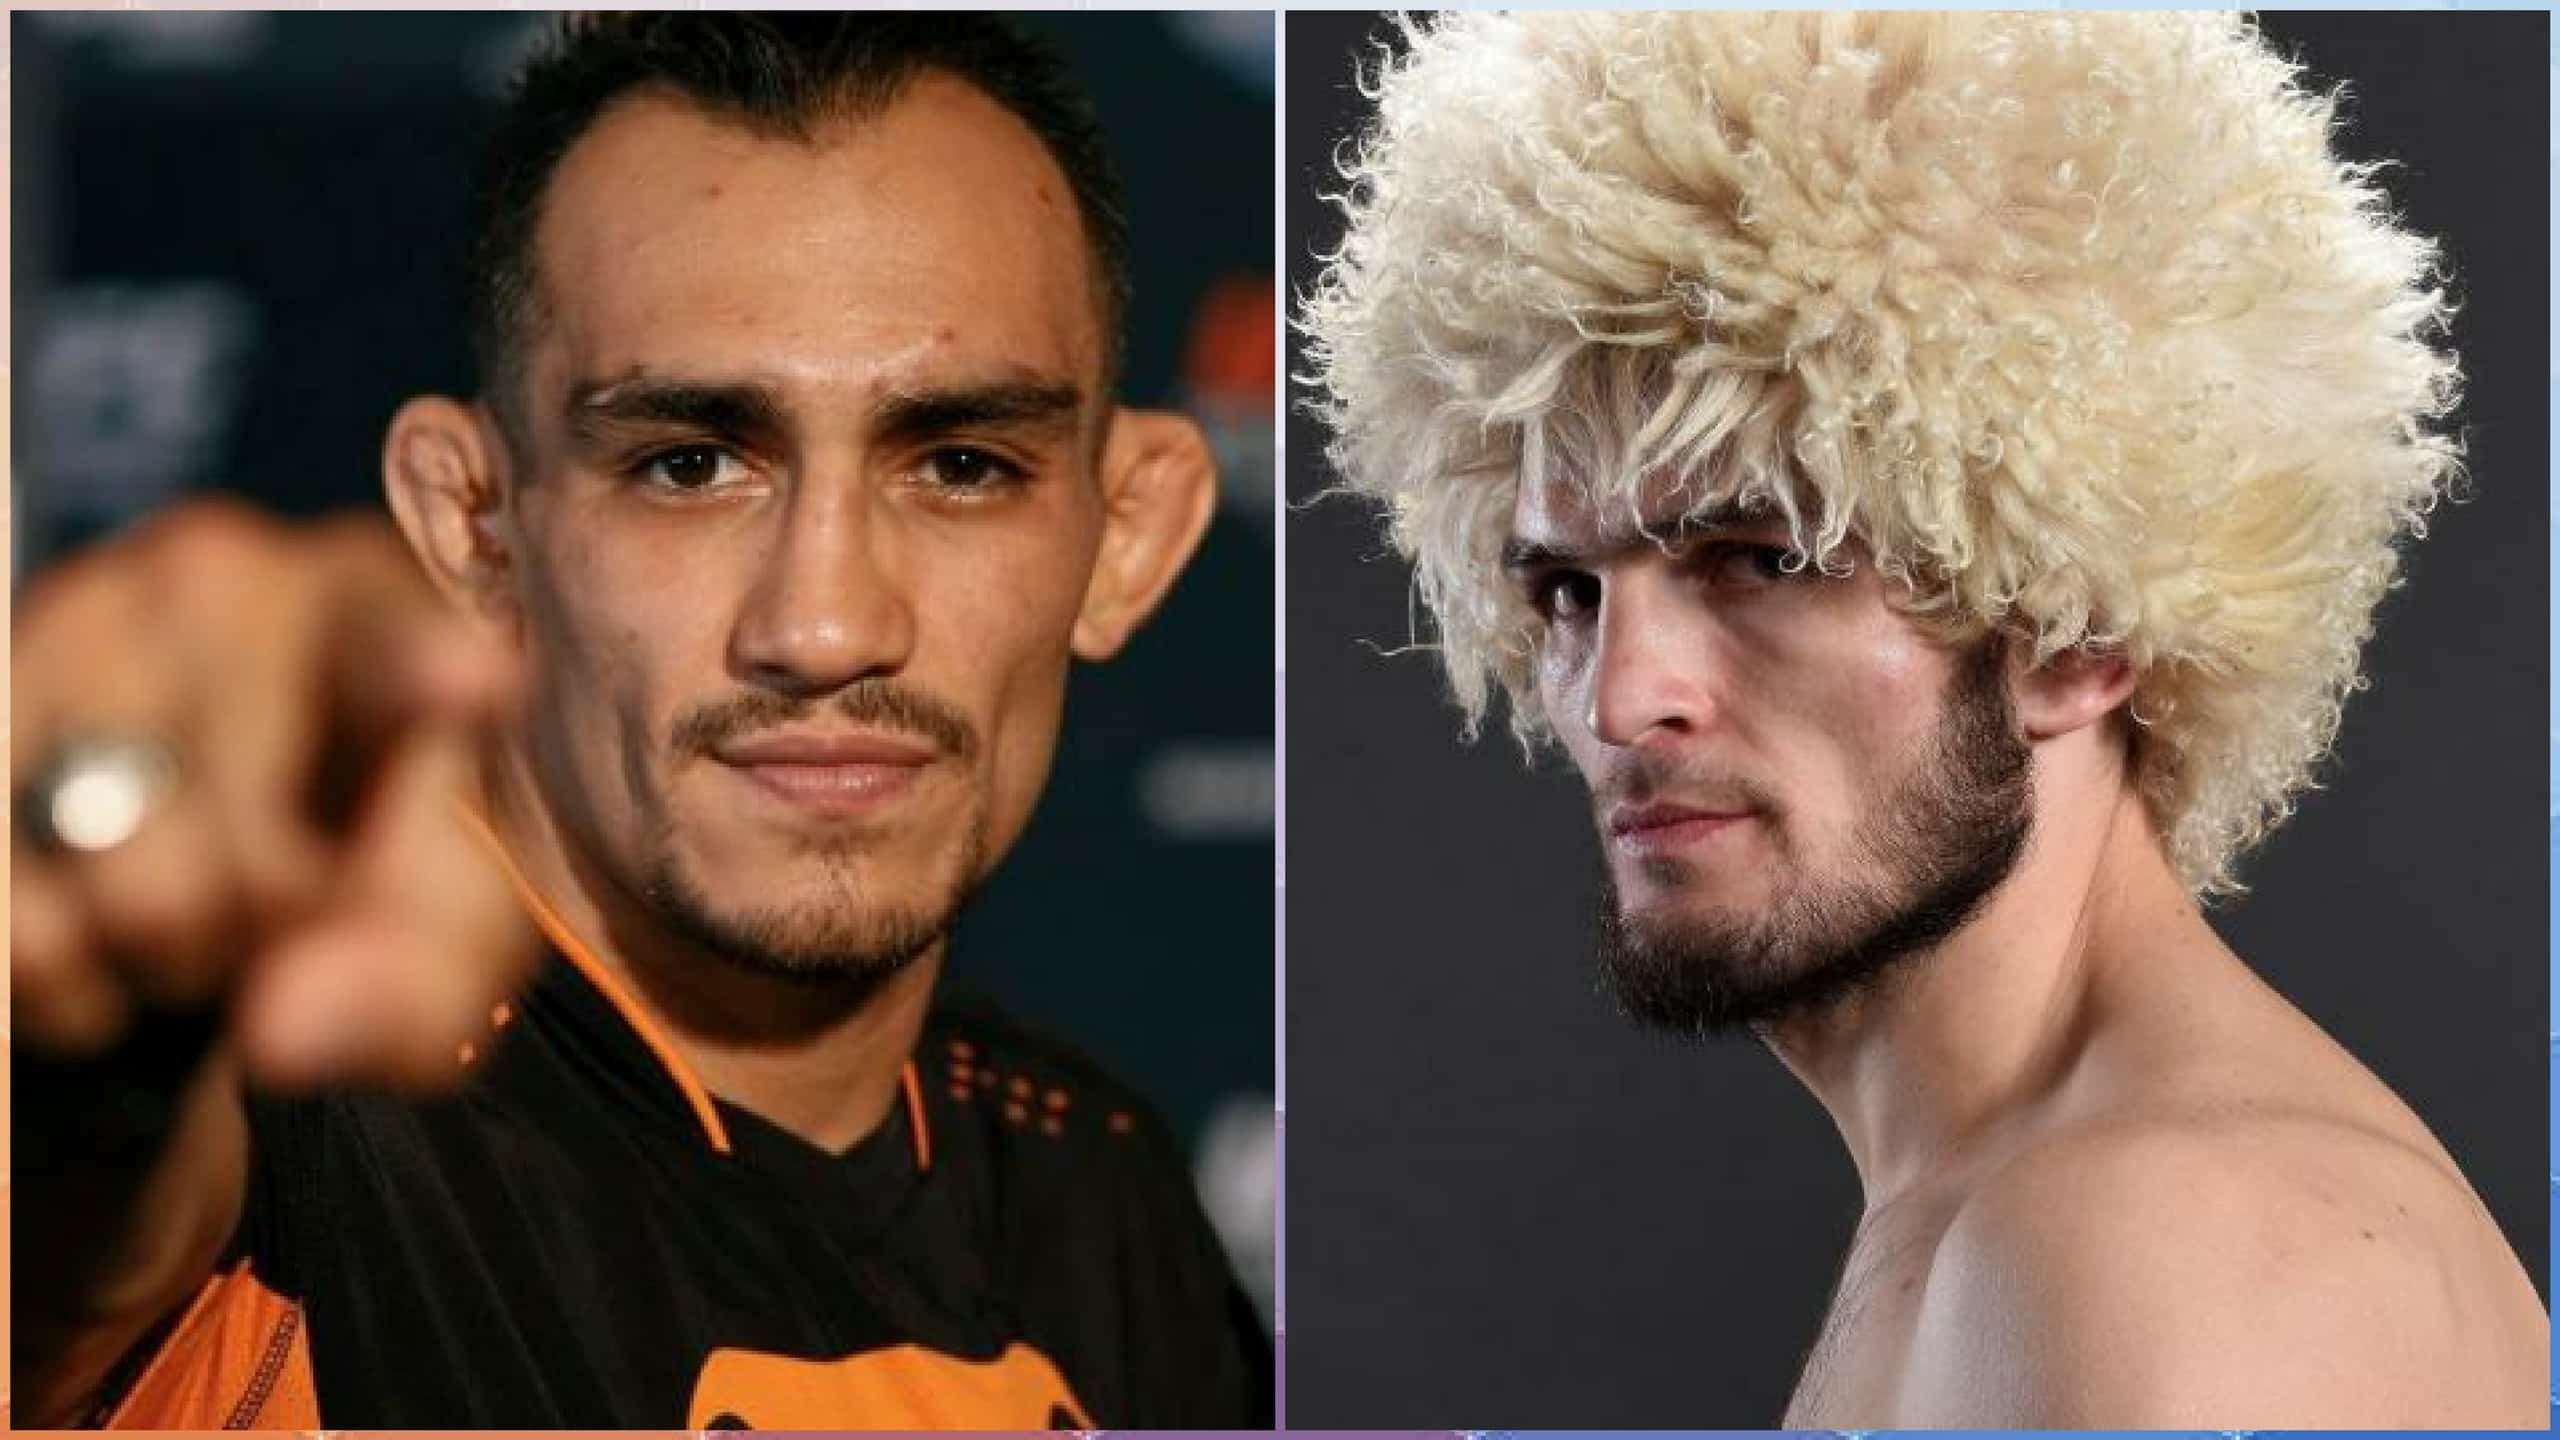 UFC 223: Tony Ferguson vs. Khabib Nurmagomedov… Finally